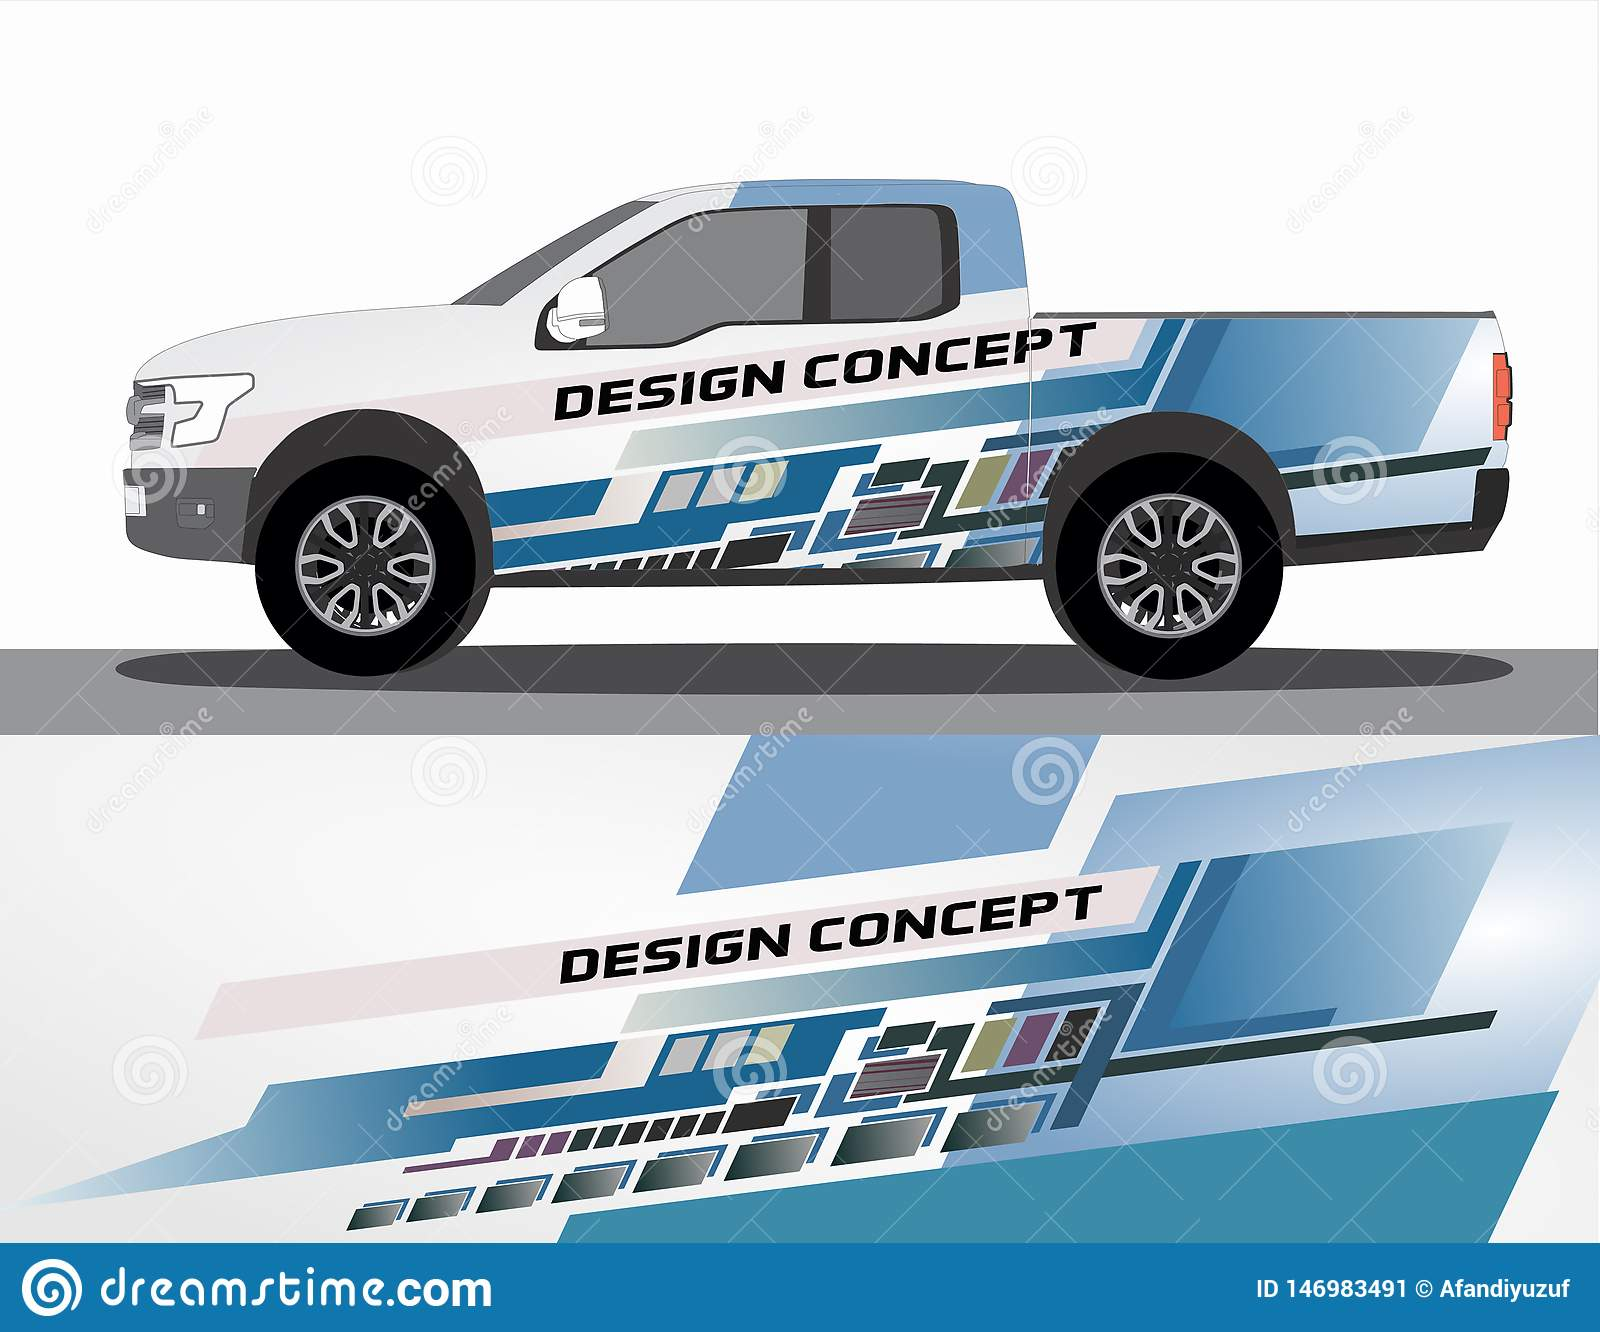 Vinyls Sticker Set Decals For Car Truck Mini Bus Modify Motorcycle Racing Vehicle Stock Vector Illustration Of Body Clip 146983491